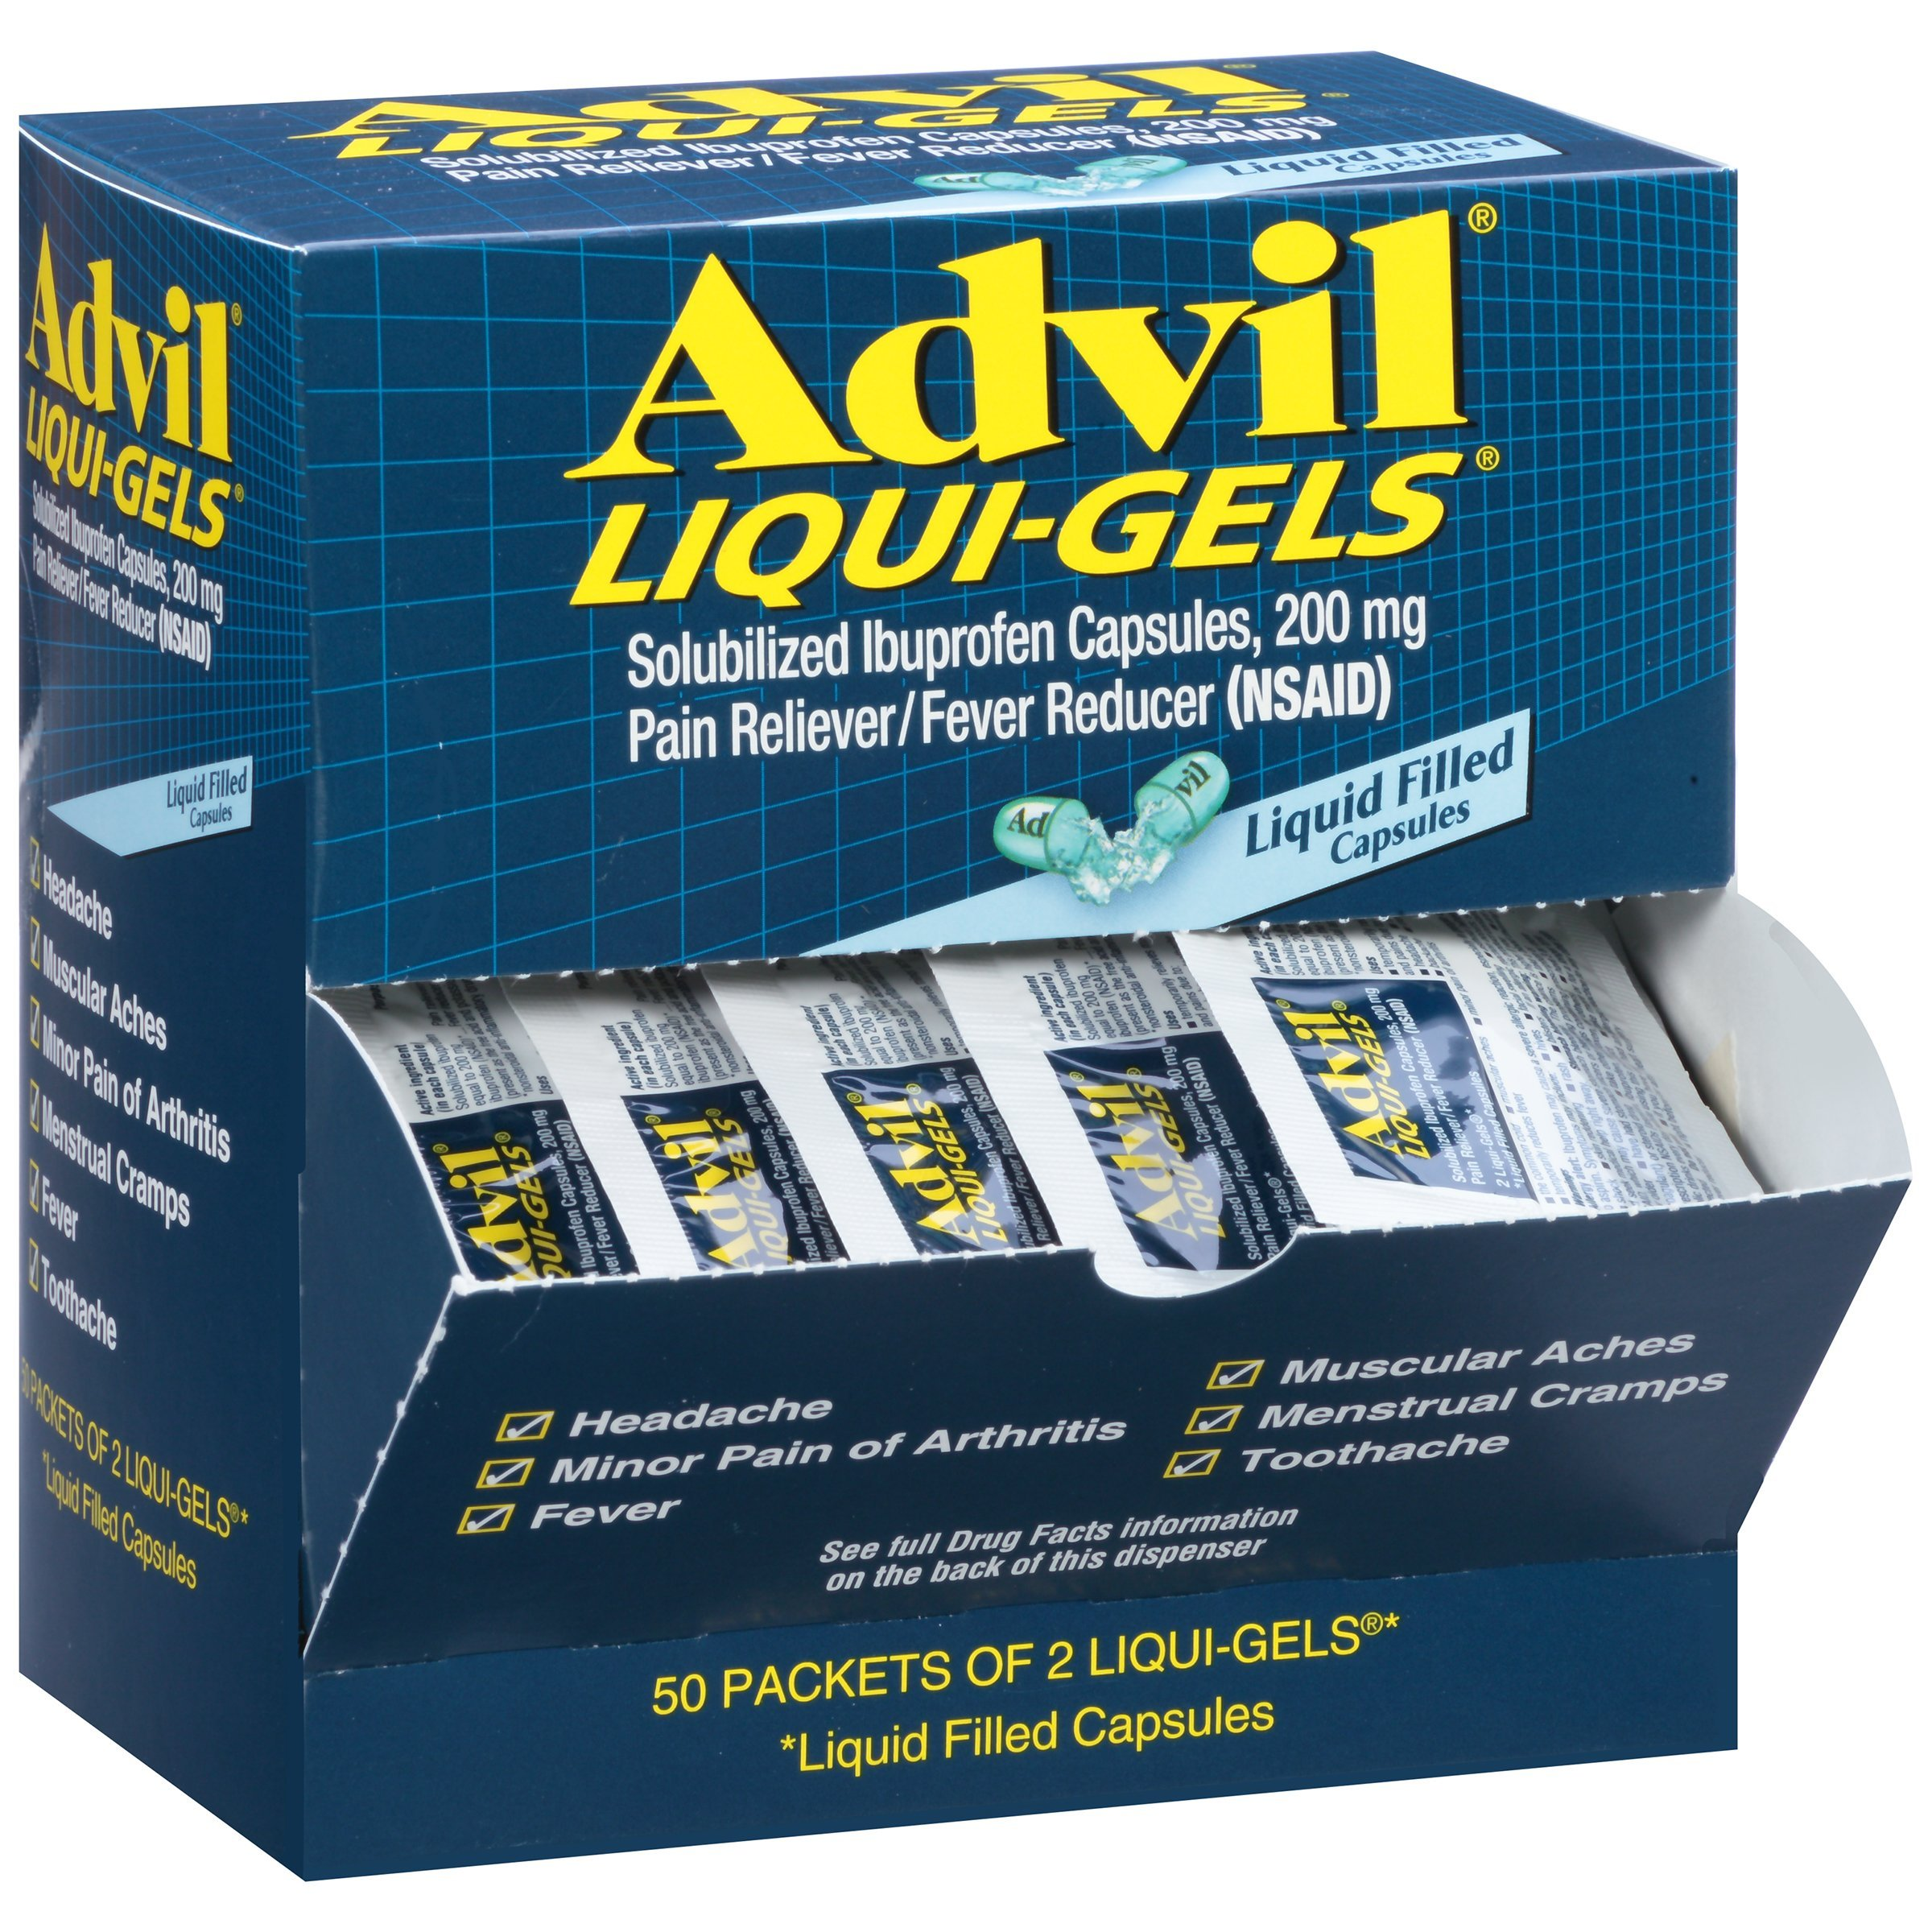 Advil Liqui-Gels Pain Reliever / Fever Reducer Liquid Filled Capsule Refill, 200mg Ibuprofen, Temporary Pain Relief (50 Packets of 2 Capsules)